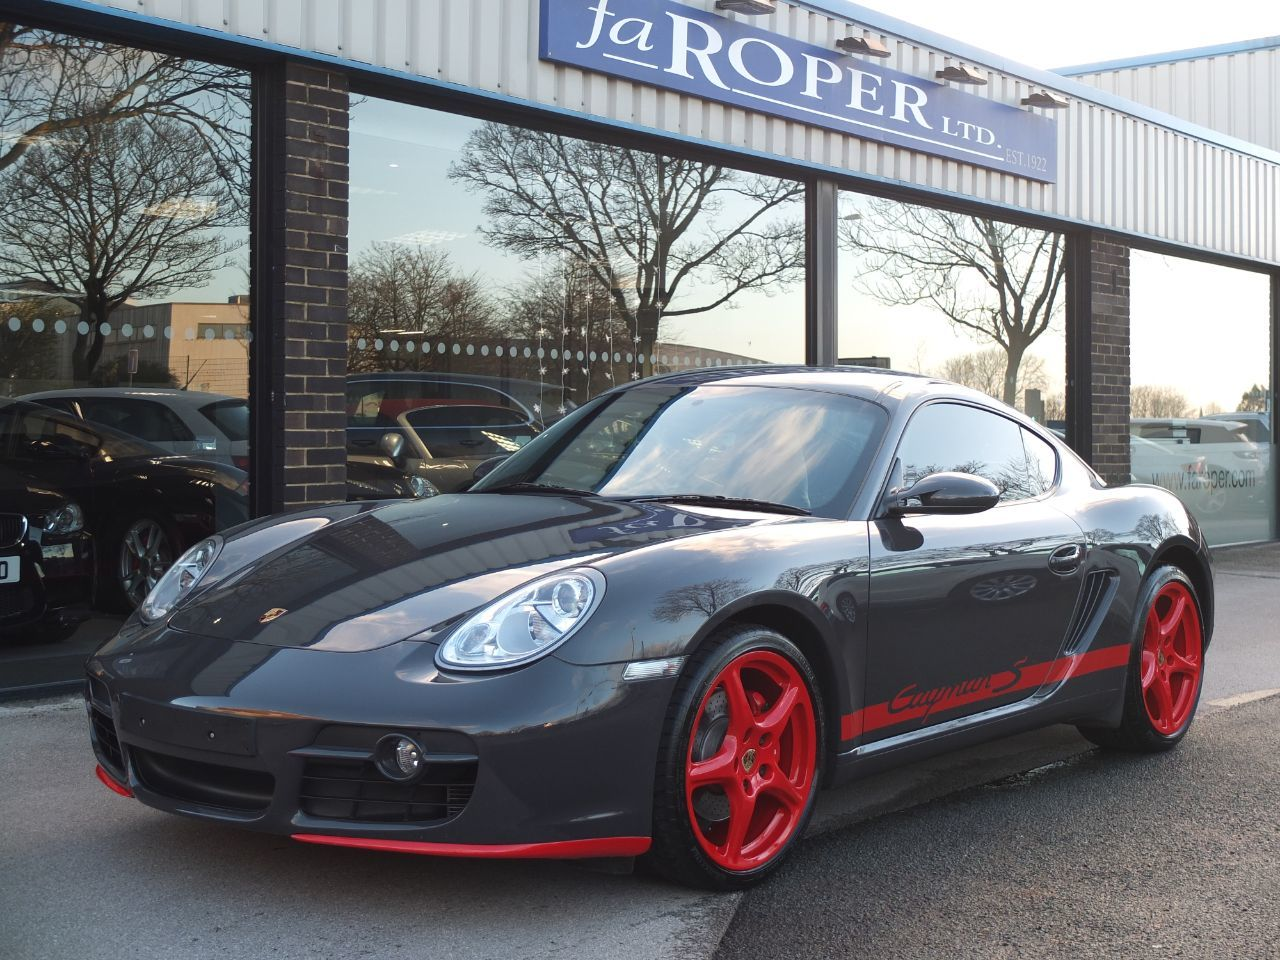 Porsche Cayman 3.4 S (RS Paint Finish) Coupe Petrol Grey Black (Gt3 Rs Colour) With Guards Red DetailPorsche Cayman 3.4 S (RS Paint Finish) Coupe Petrol Grey Black (Gt3 Rs Colour) With Guards Red Detail at fa Roper Ltd Bradford